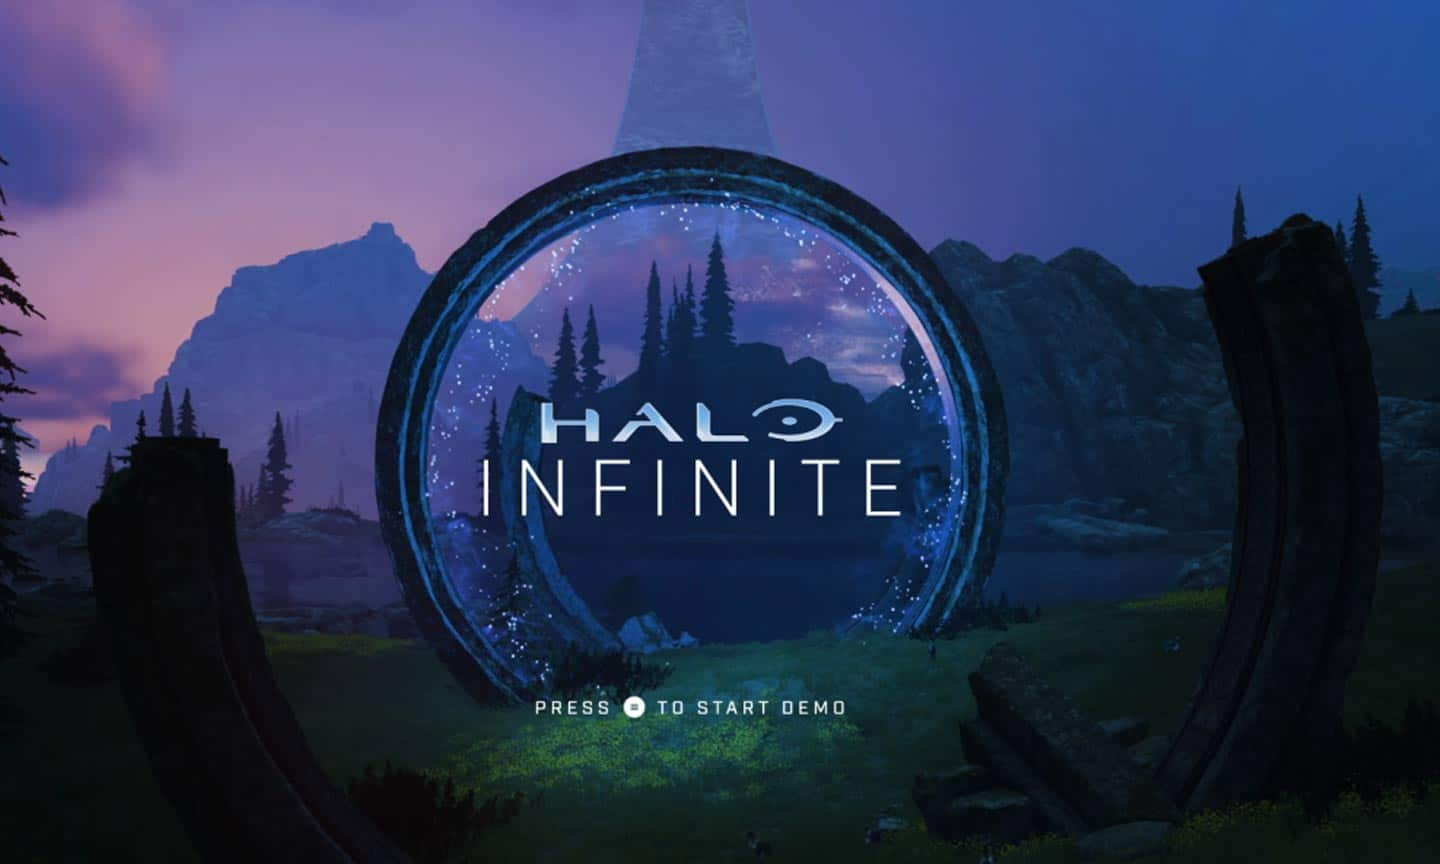 Halo Infinite - (C) 343 Industries, Xbox Game Studios